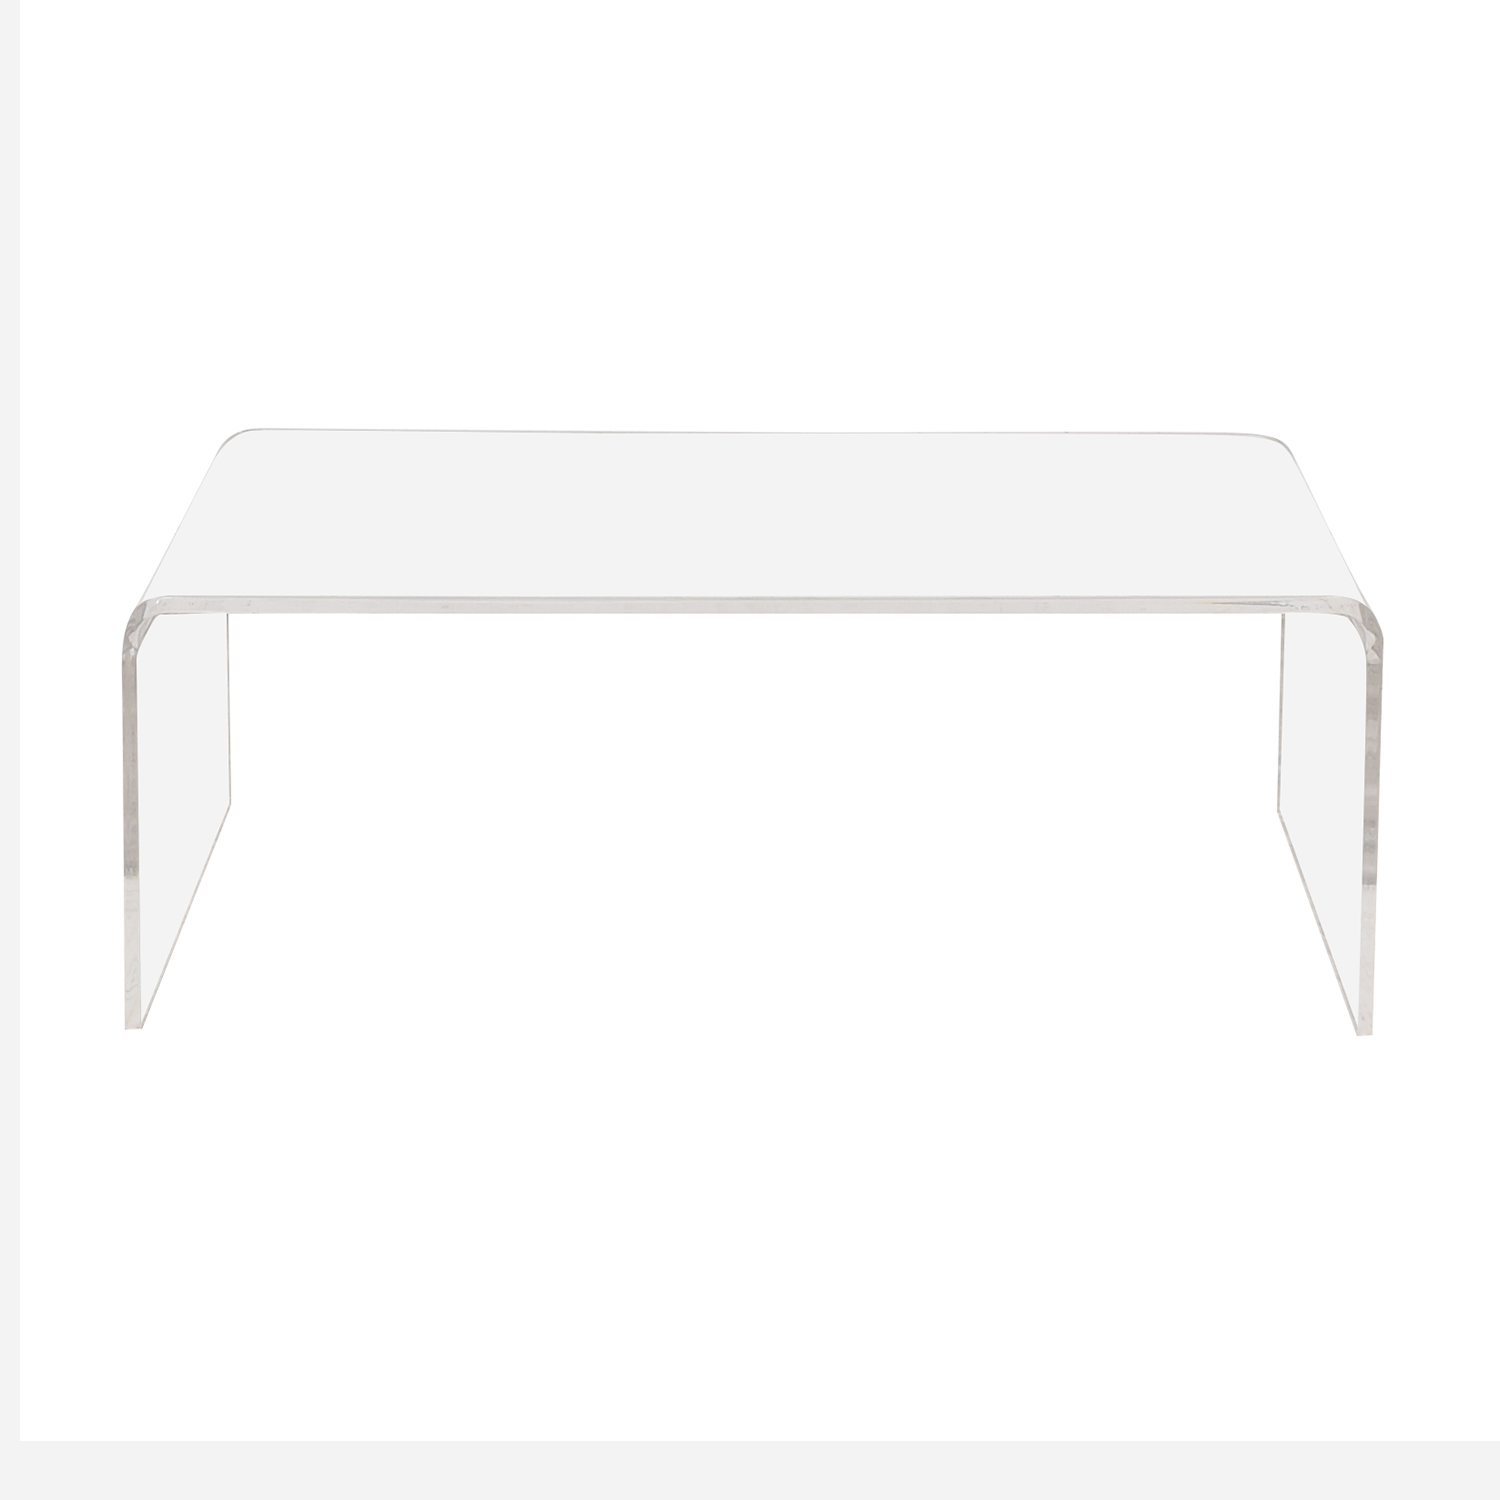 CB2 CB2 Peekaboo Acrylic Coffee Table coupon